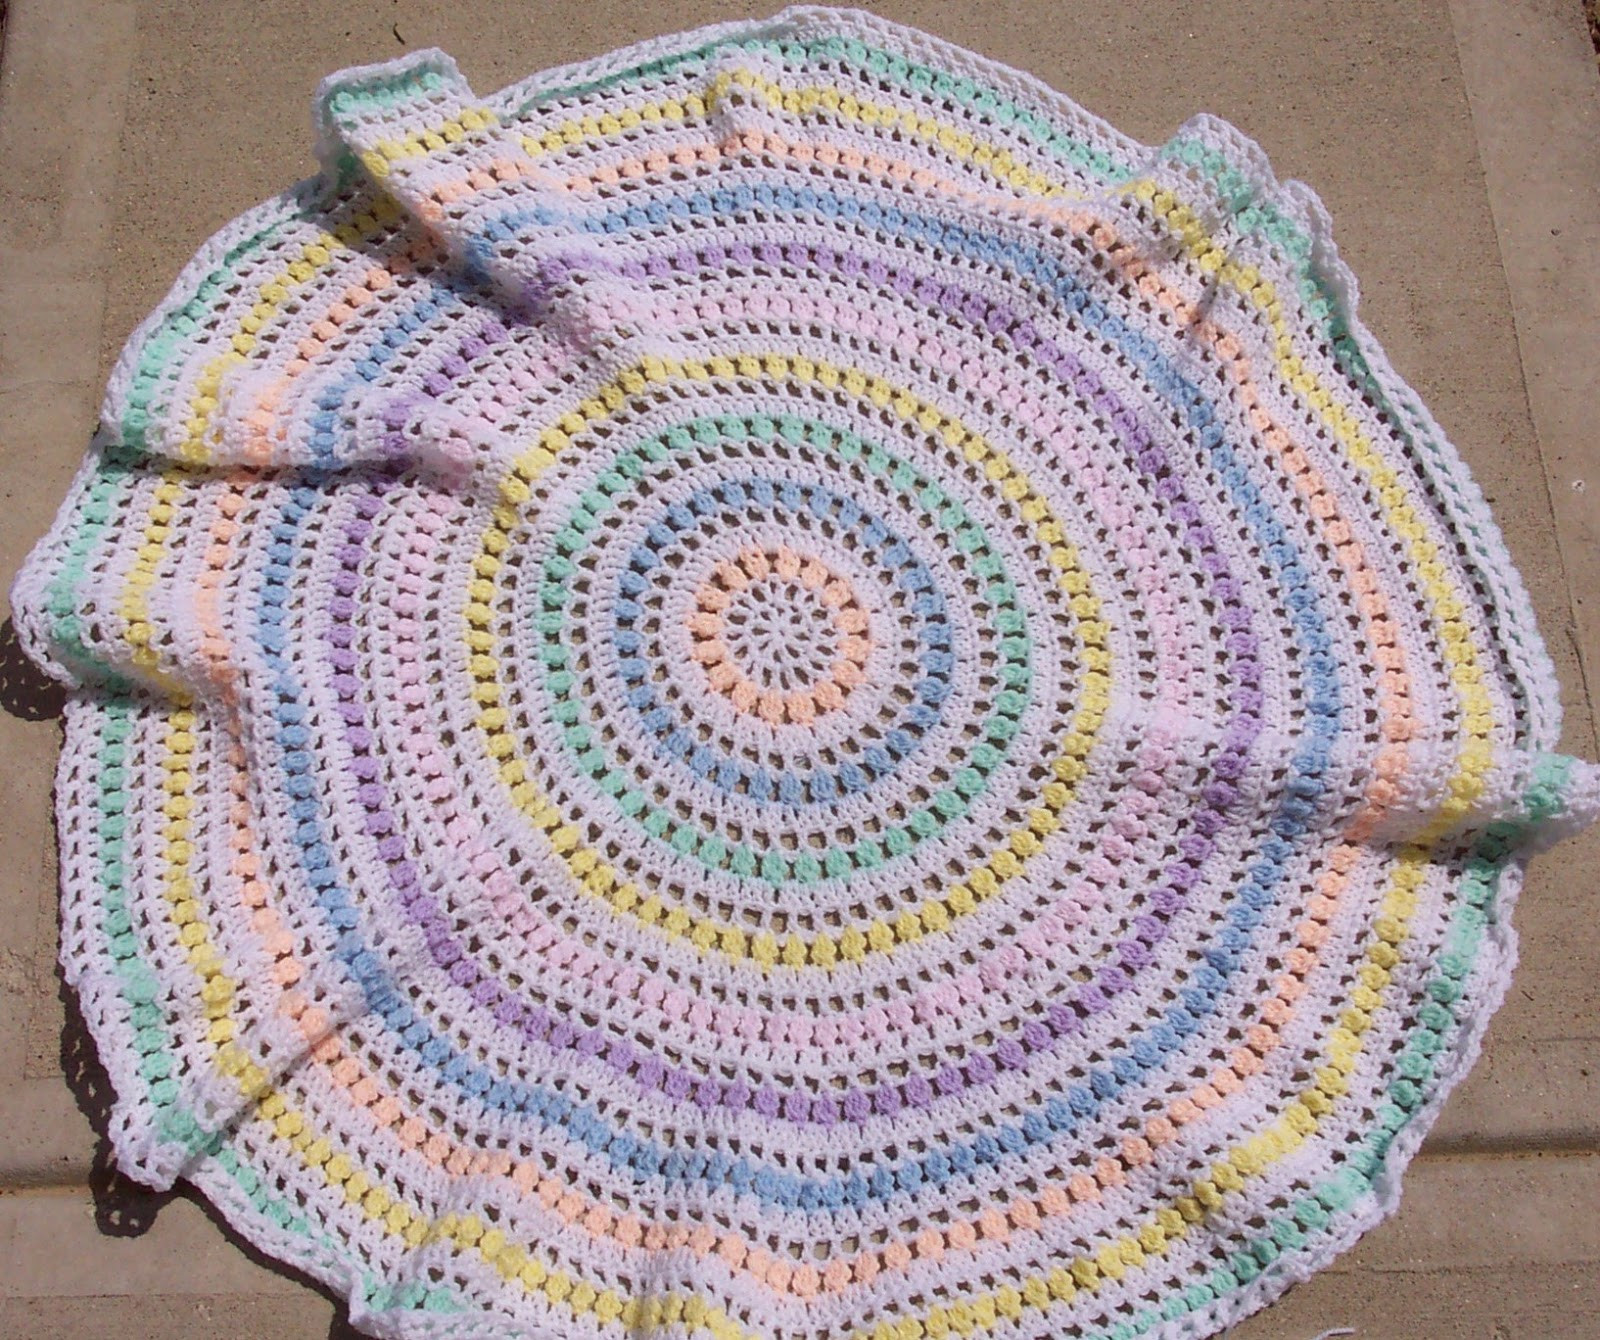 Awesome Smoothfox Crochet and Knit Smoothfox S Spring Circle Crochet Circle Blanket Pattern Of Brilliant 42 Pictures Crochet Circle Blanket Pattern